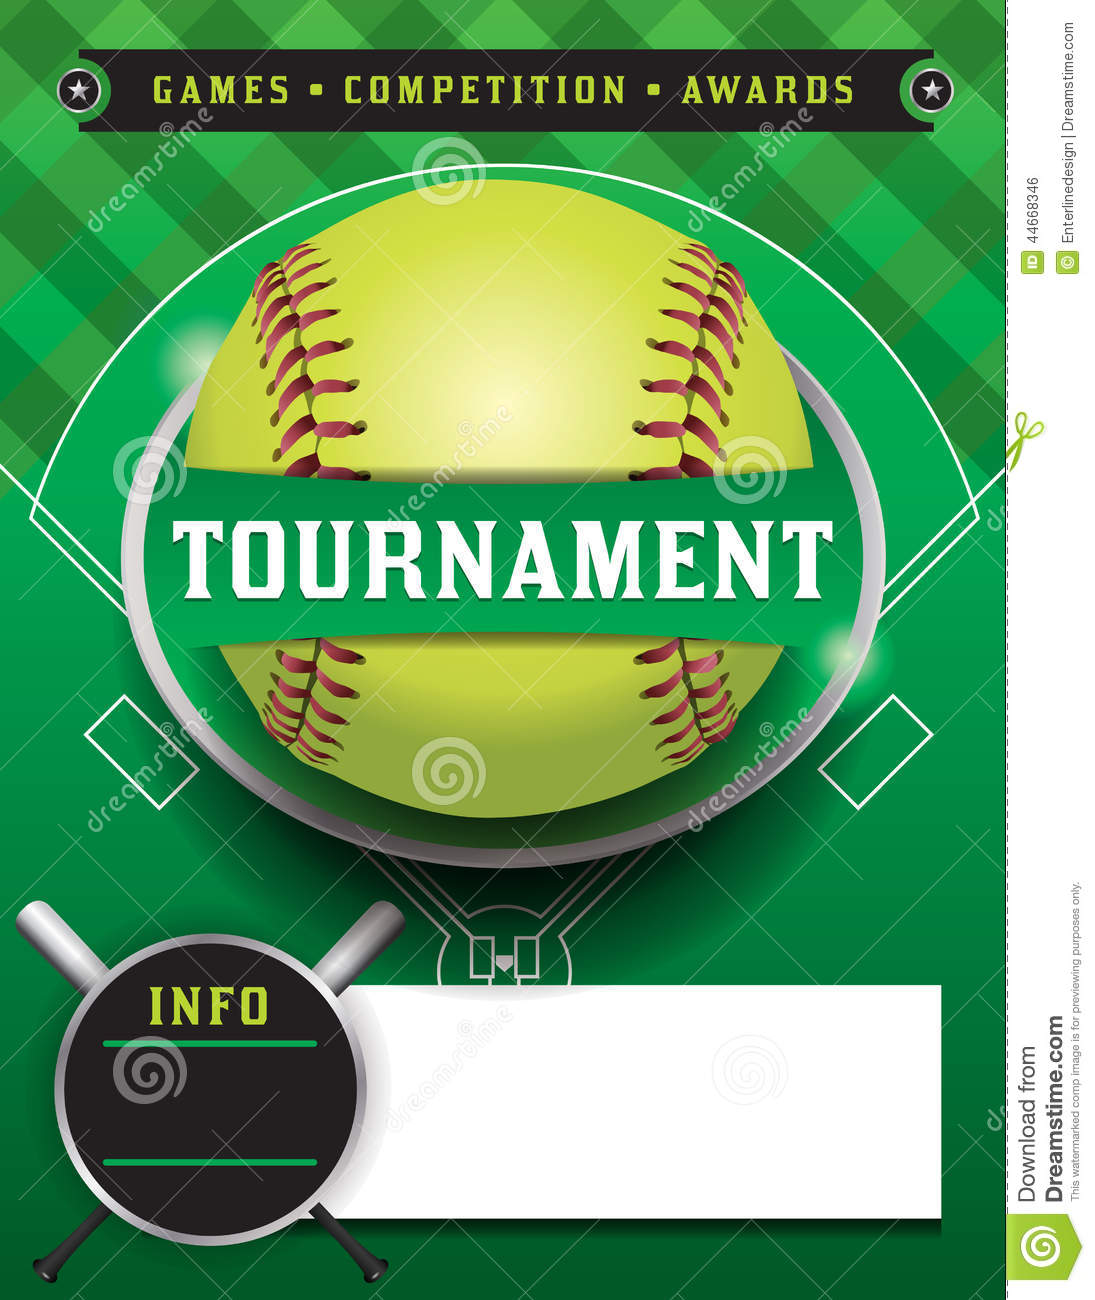 softball tournament template illustration stock vector image 44668346. Black Bedroom Furniture Sets. Home Design Ideas